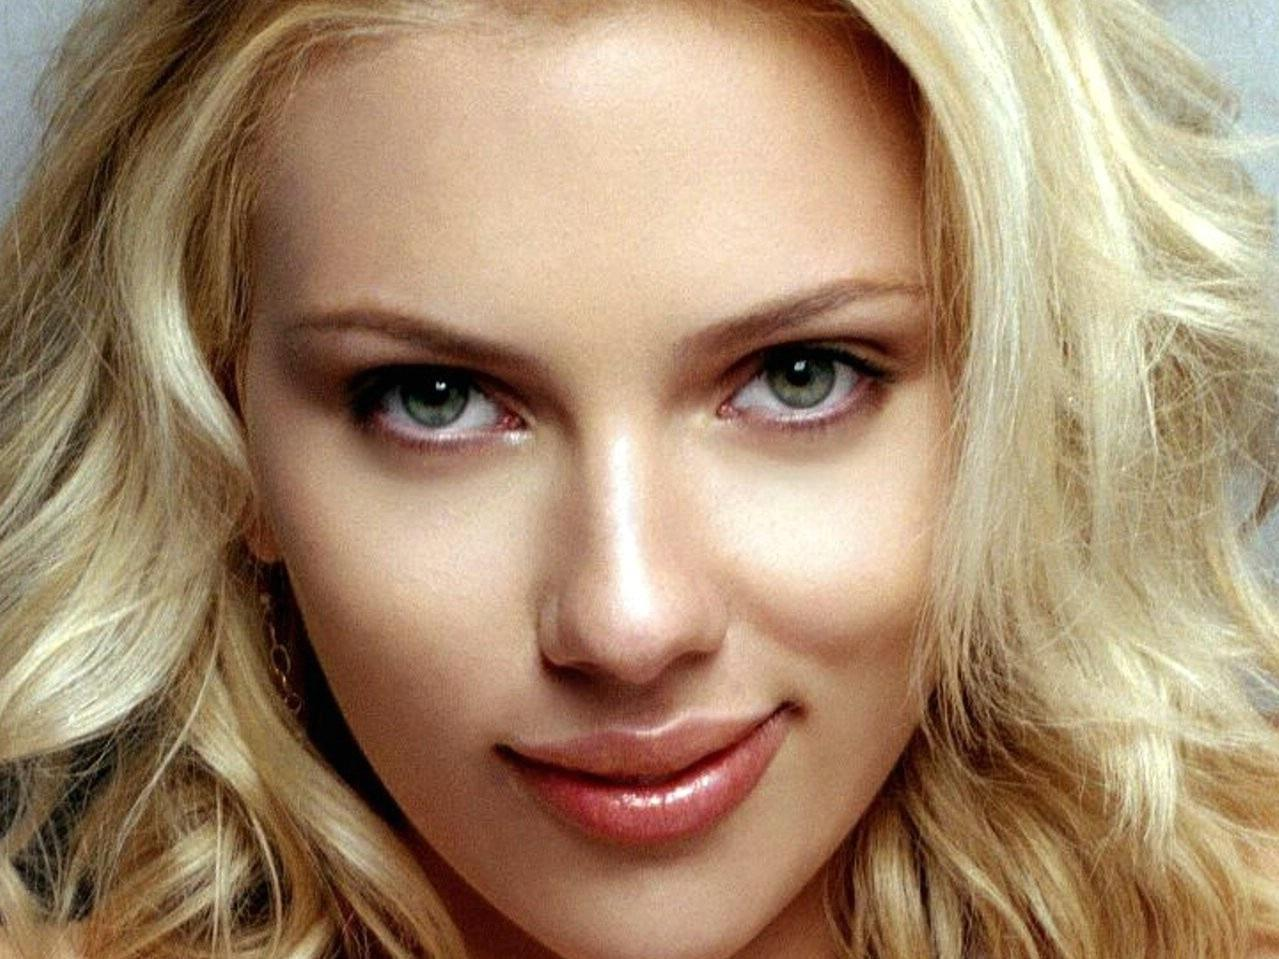 Scarlett Johansson Wallpaper 17 Backgrounds | Wallruru.